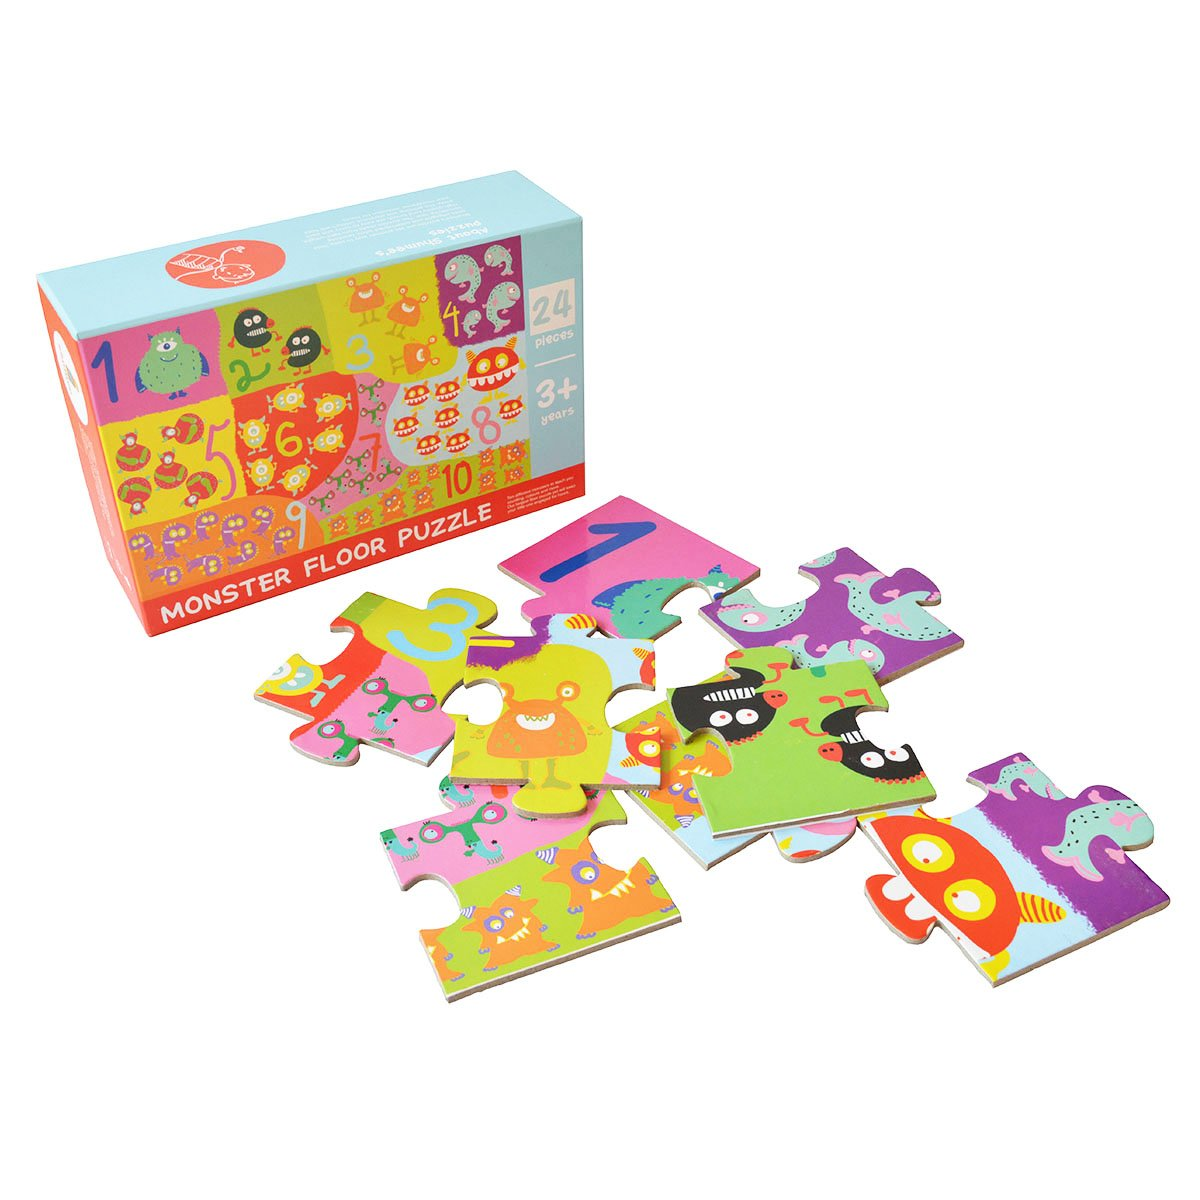 Shumee Jumbo Monster Jigsaw Floor Puzzle for Toddlers, Kids, Preschool Age Children | Educational, Constructive Toy |Learn Counting & Colors| 100% Safe, Natural & Eco-friendly | 3 Years+